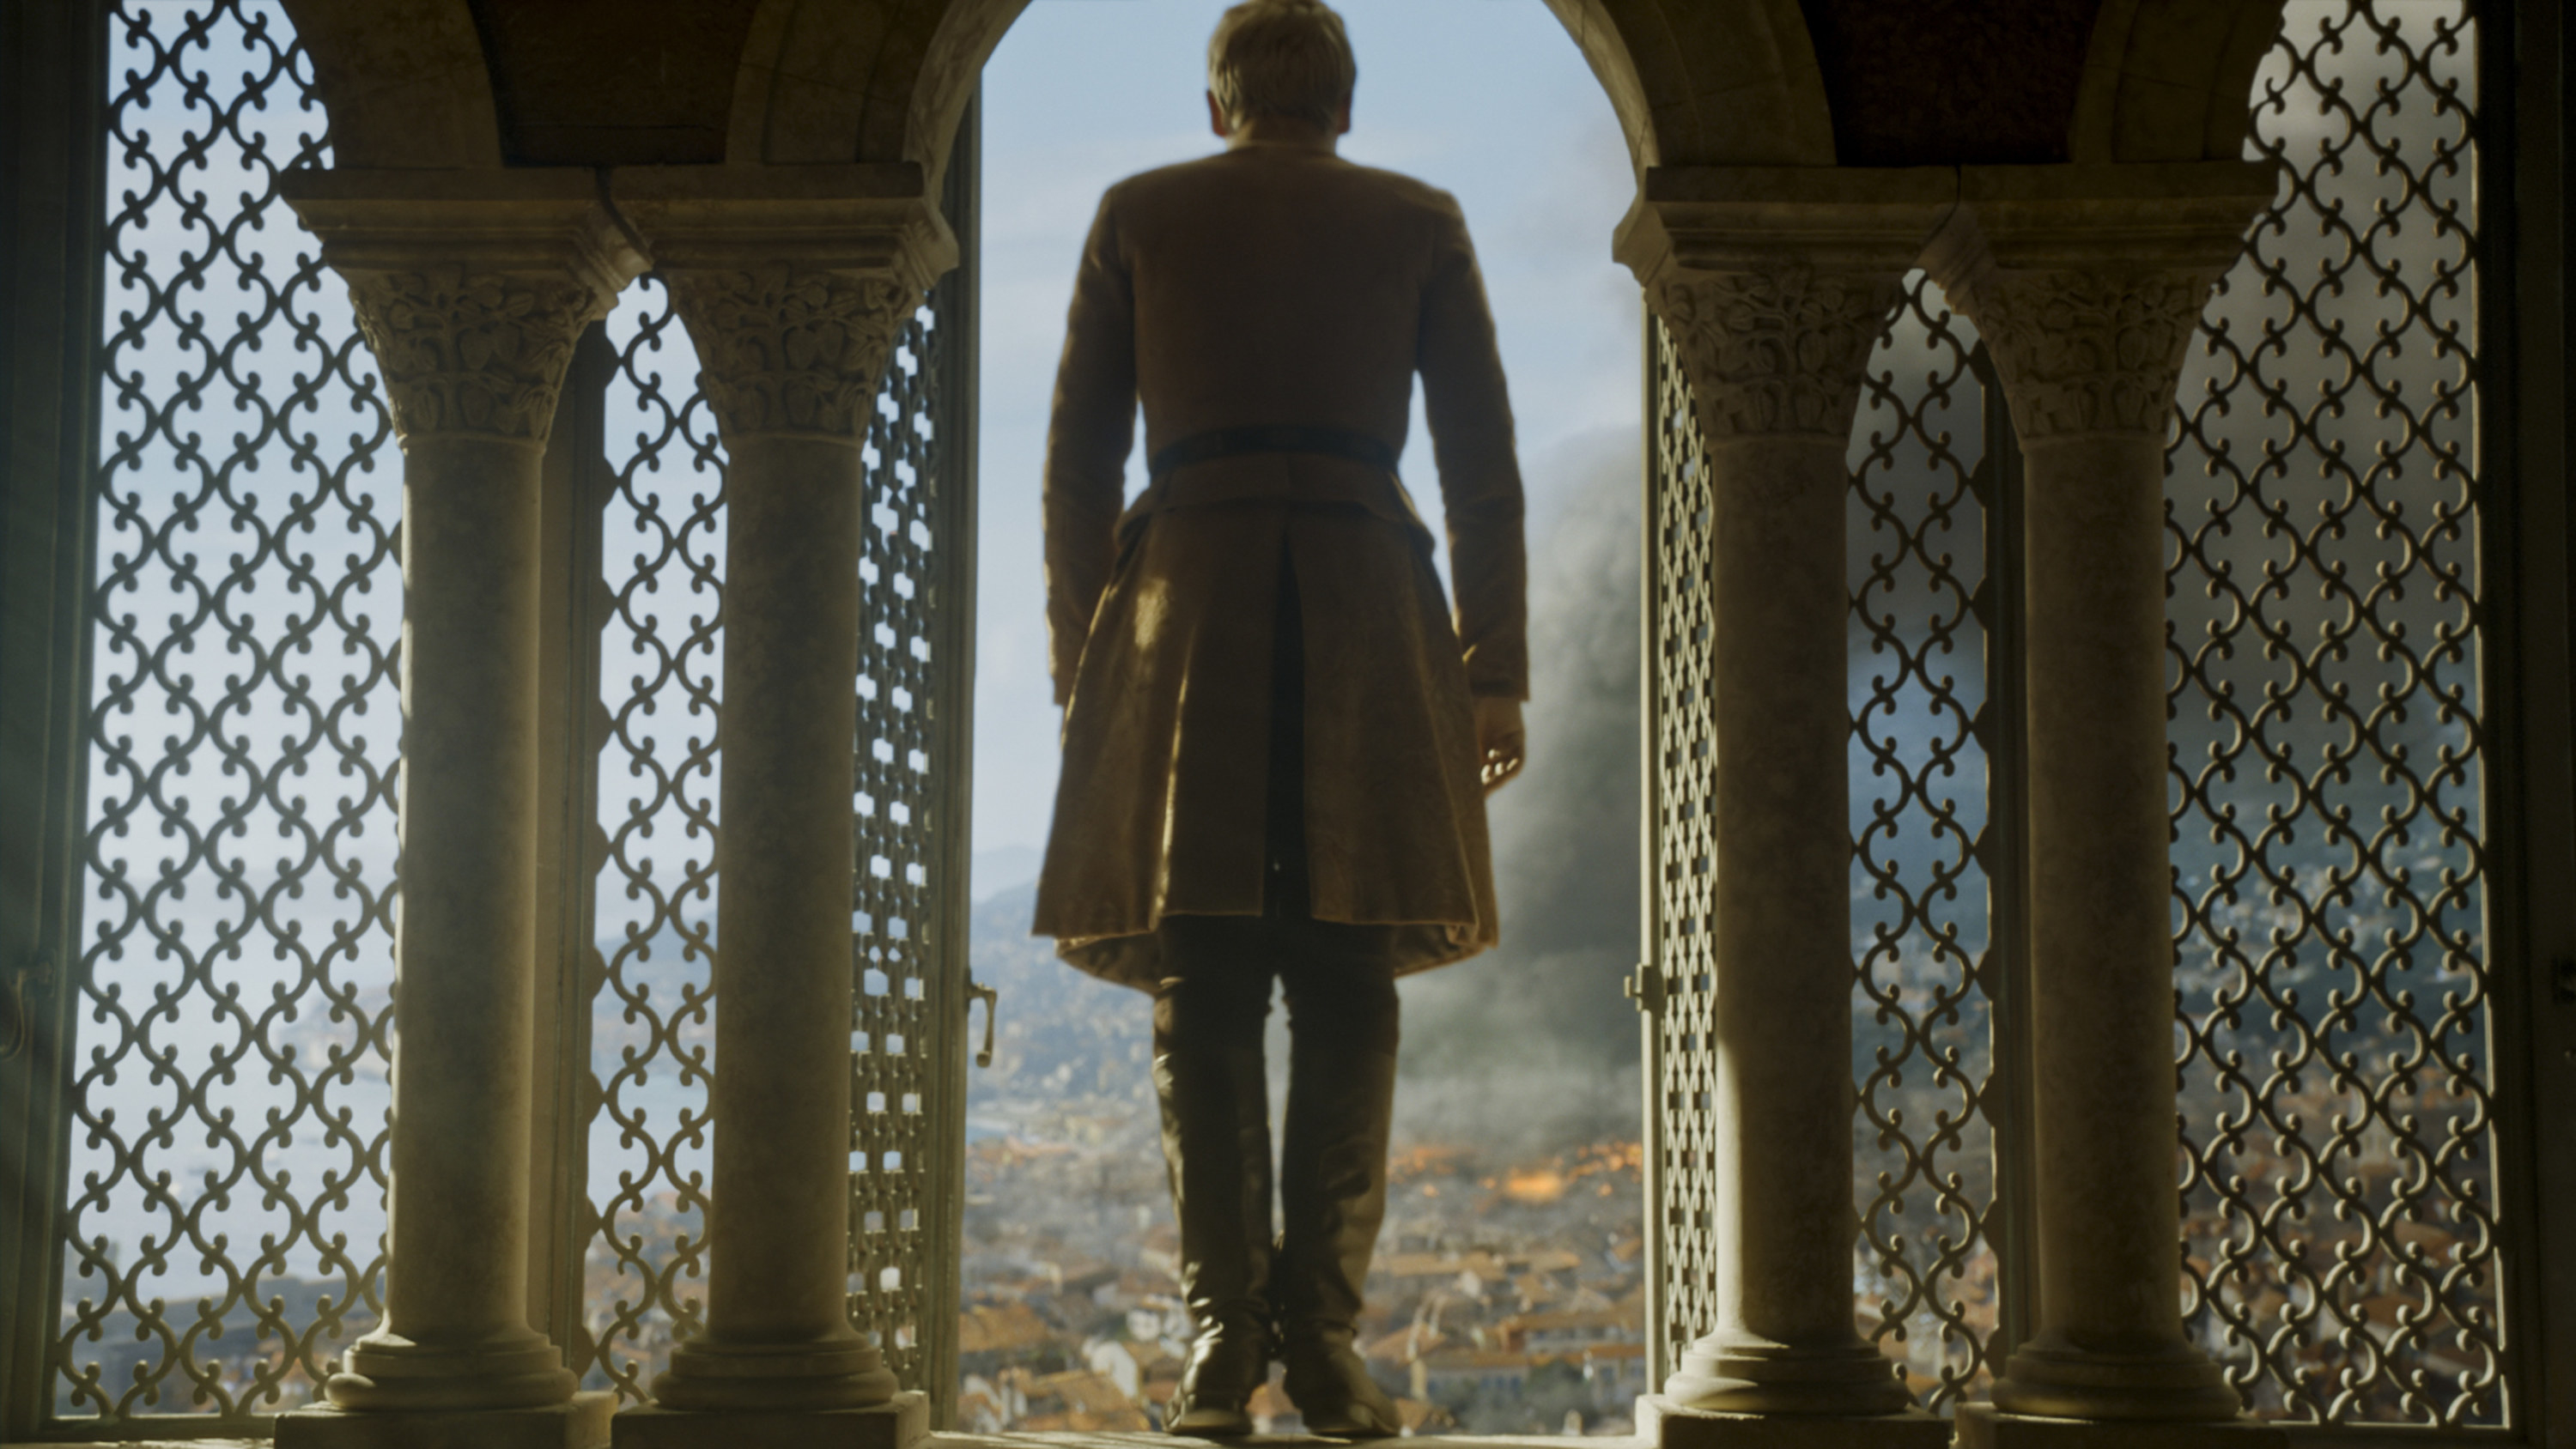 Tommen stepping out of his window as the city burns